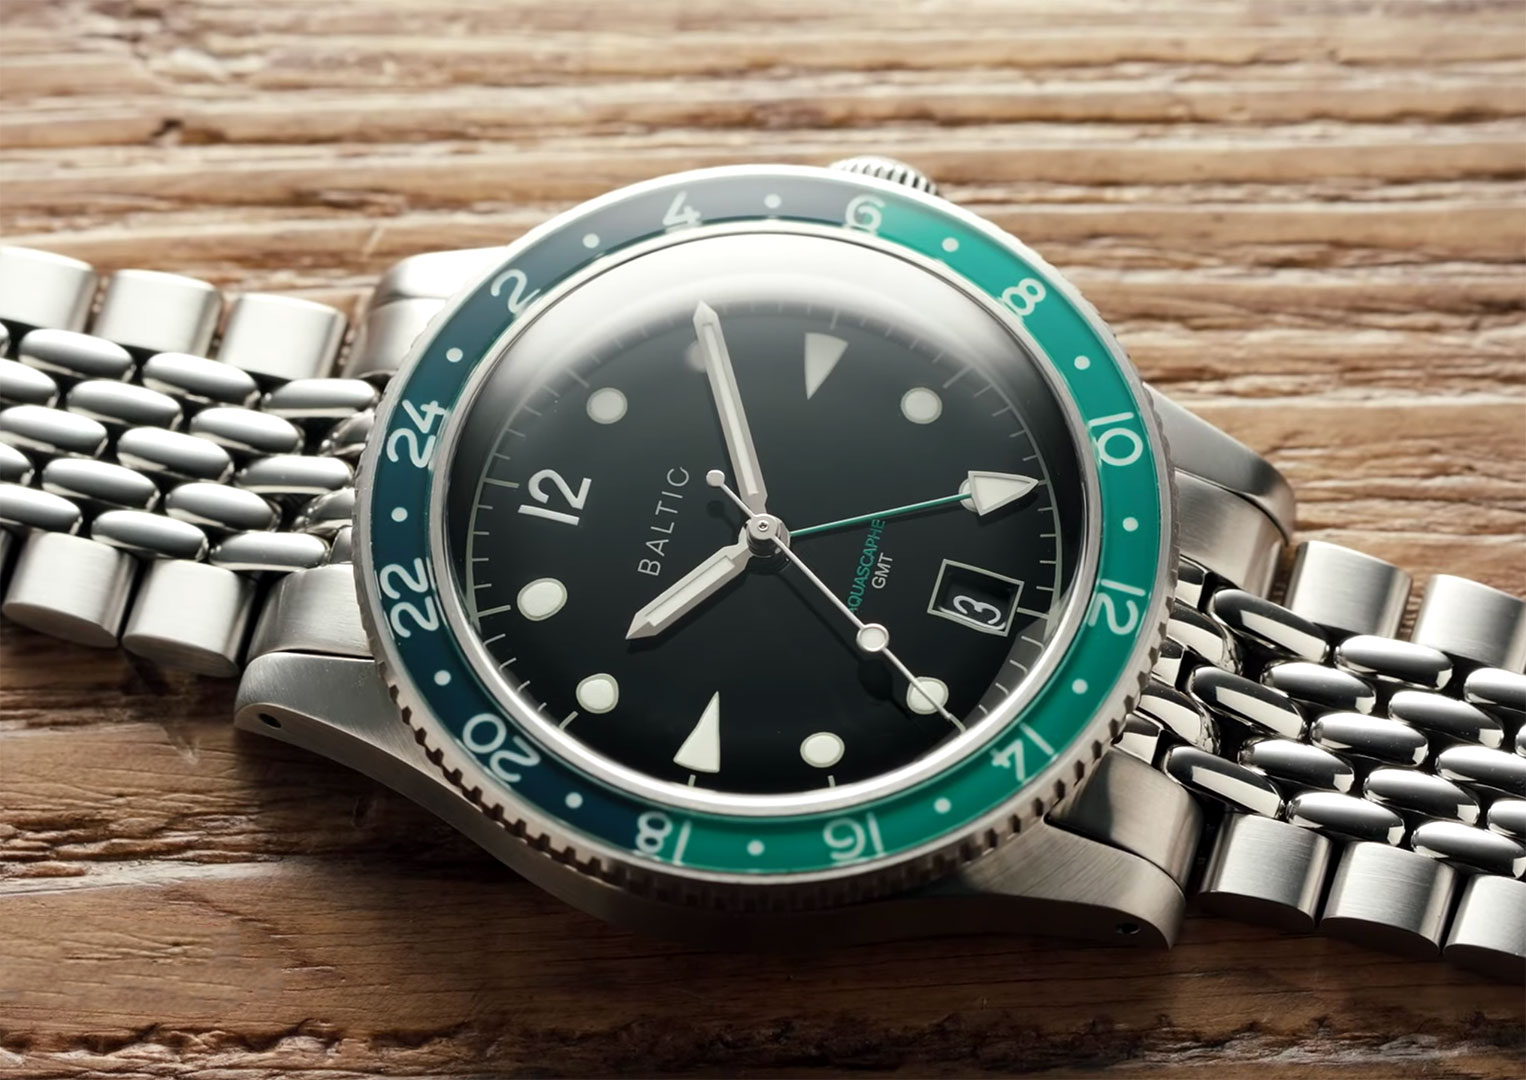 The Baltic Aquascaphe GMT is powered by the Soprod calibre C125